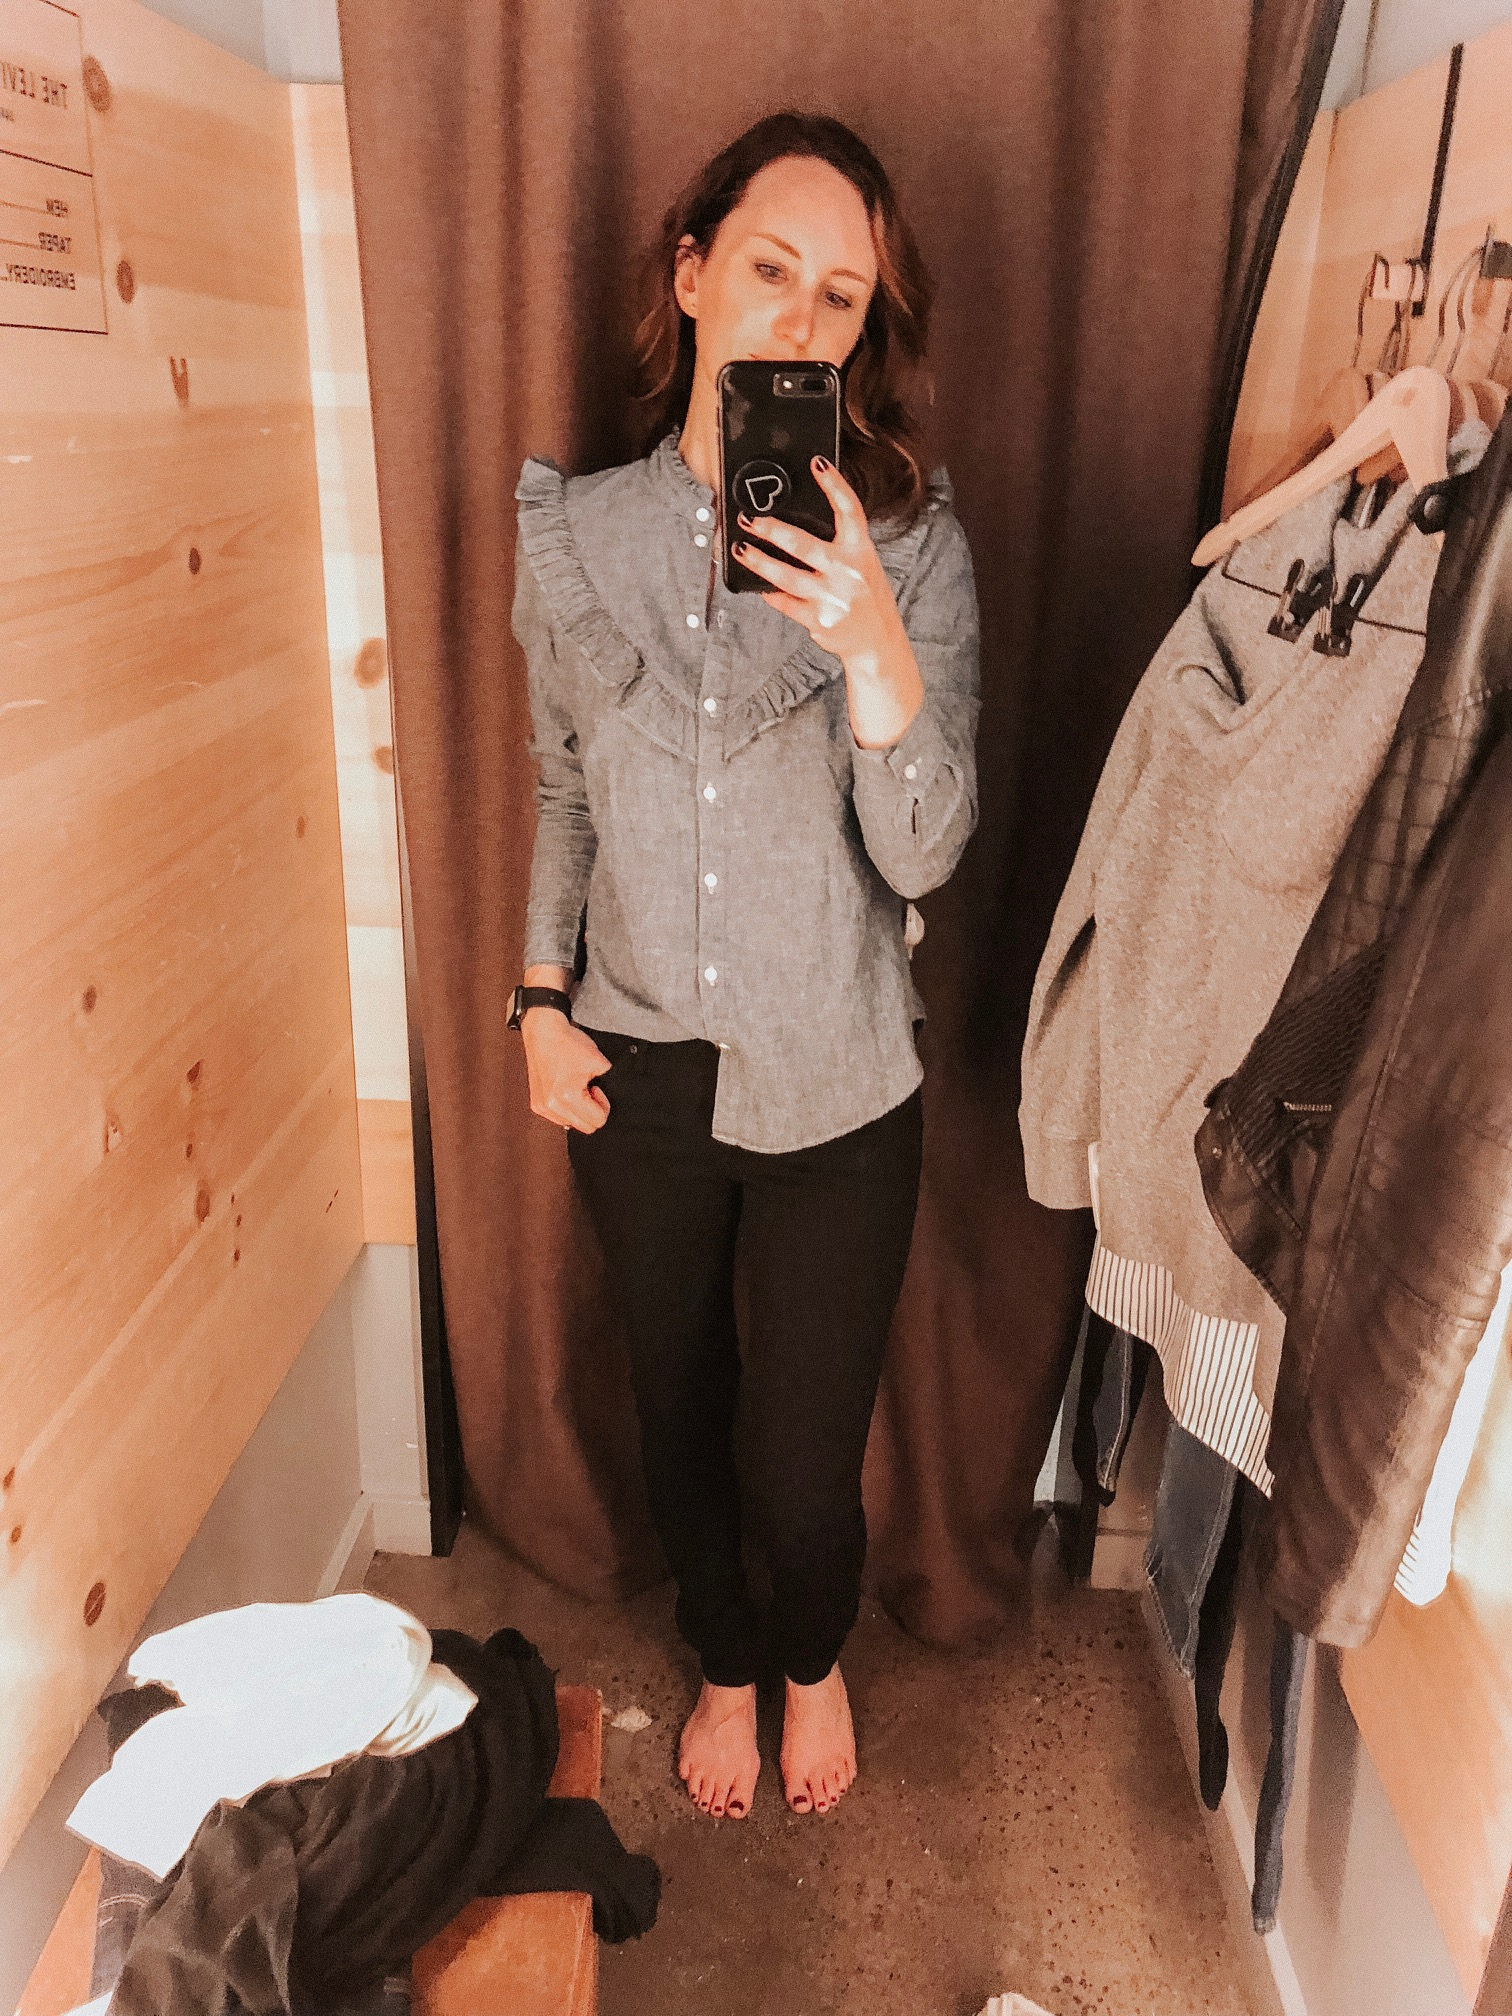 Daily Splendor | Levi's Try On Session #levis #denim #jeans #casualstyle #chambray